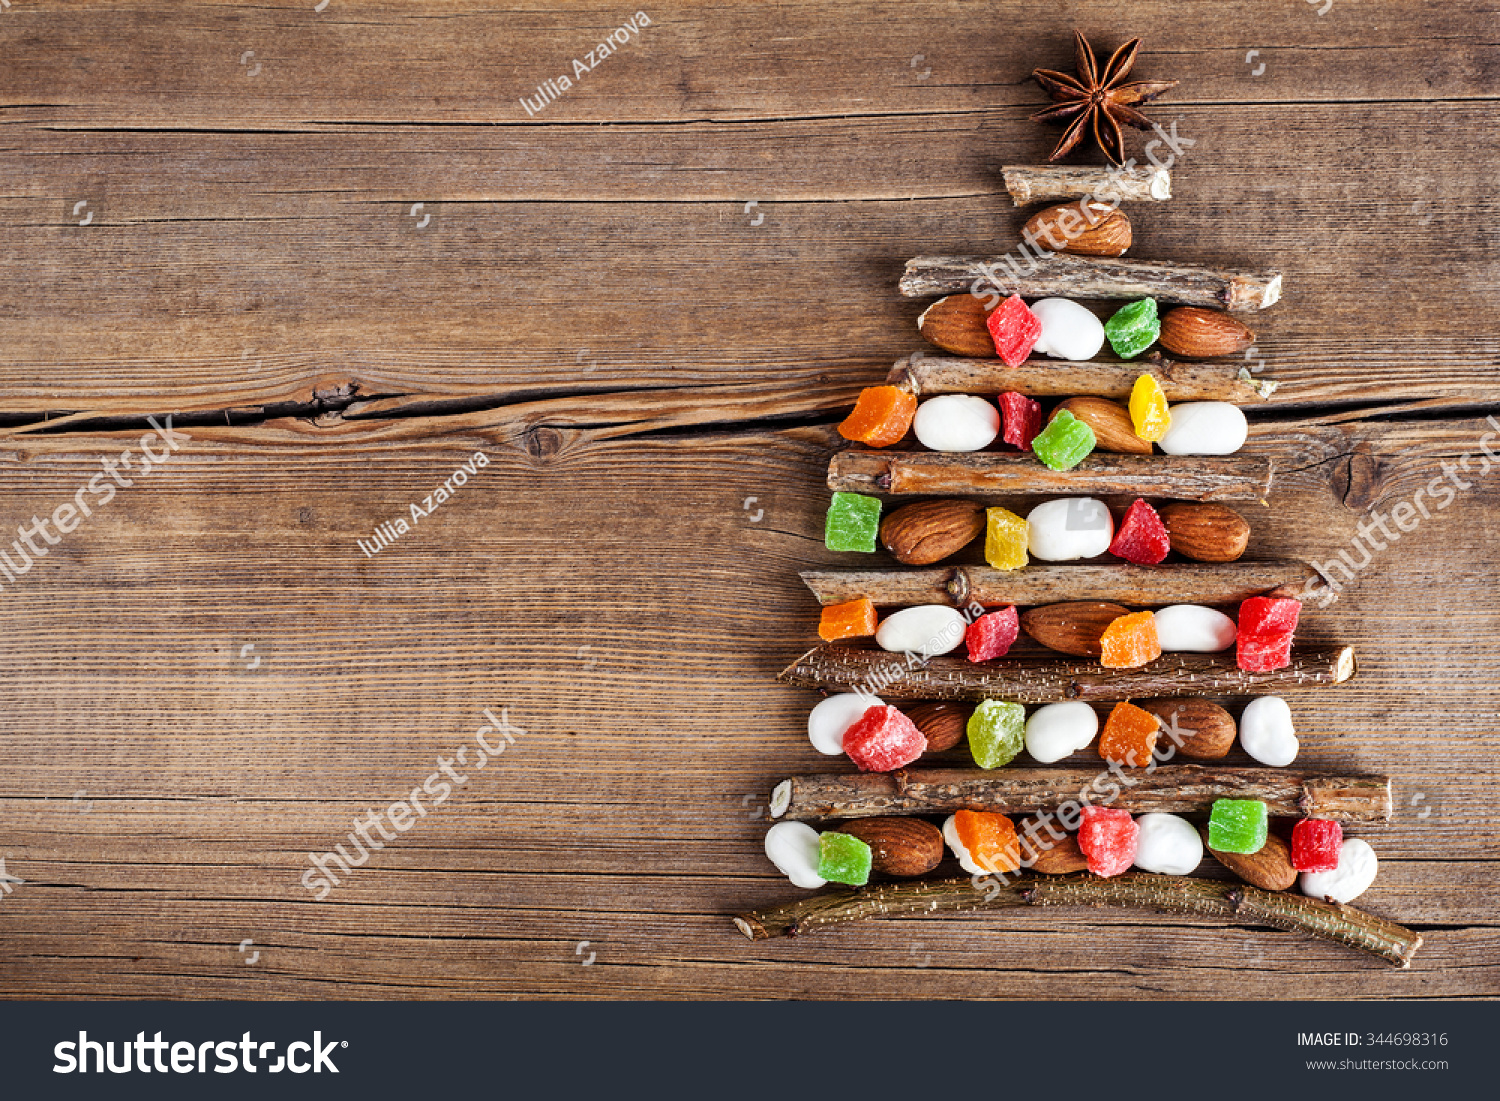 Amazing Wallpaper Christmas Wood - stock-photo-christmas-card-with-natural-decorations-on-wooden-background-set-of-different-varieties-of-objects-344698316  Graphic_515443 .jpg